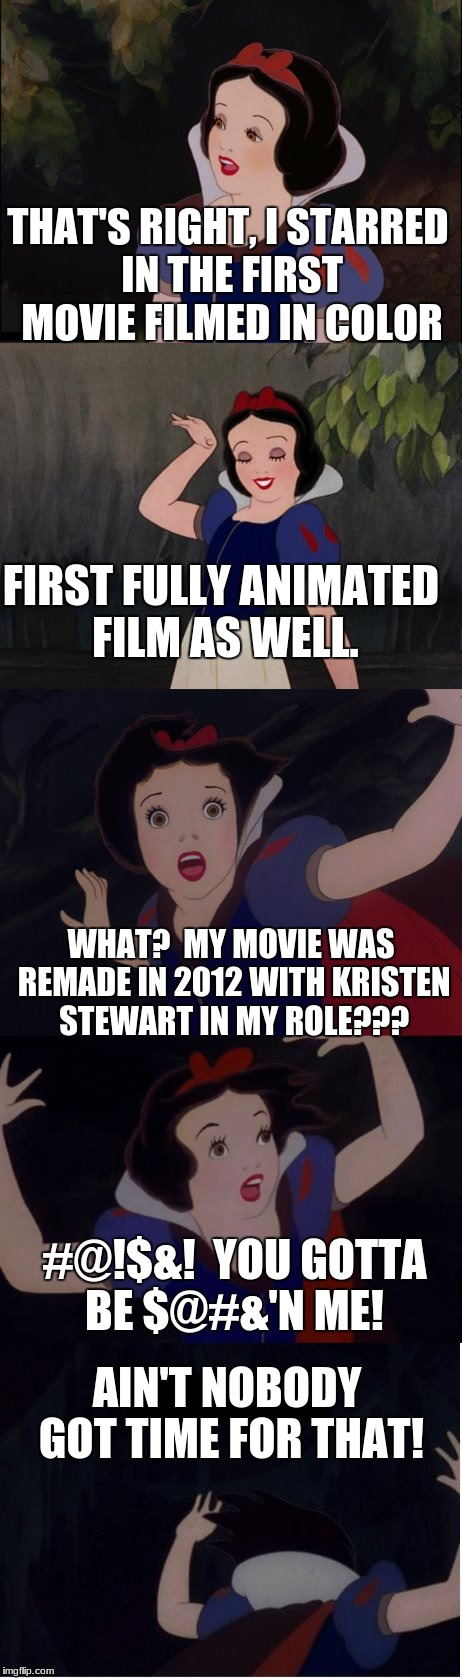 Triggered Snow White (in celebration of Triggered Fairy Tale Week) | THAT'S RIGHT, I STARRED IN THE FIRST MOVIE FILMED IN COLOR AIN'T NOBODY GOT TIME FOR THAT! FIRST FULLY ANIMATED FILM AS WELL. WHAT?  MY MOVI | image tagged in snow white,kristen stewart,funny,memes,aint nobody got time for that | made w/ Imgflip meme maker